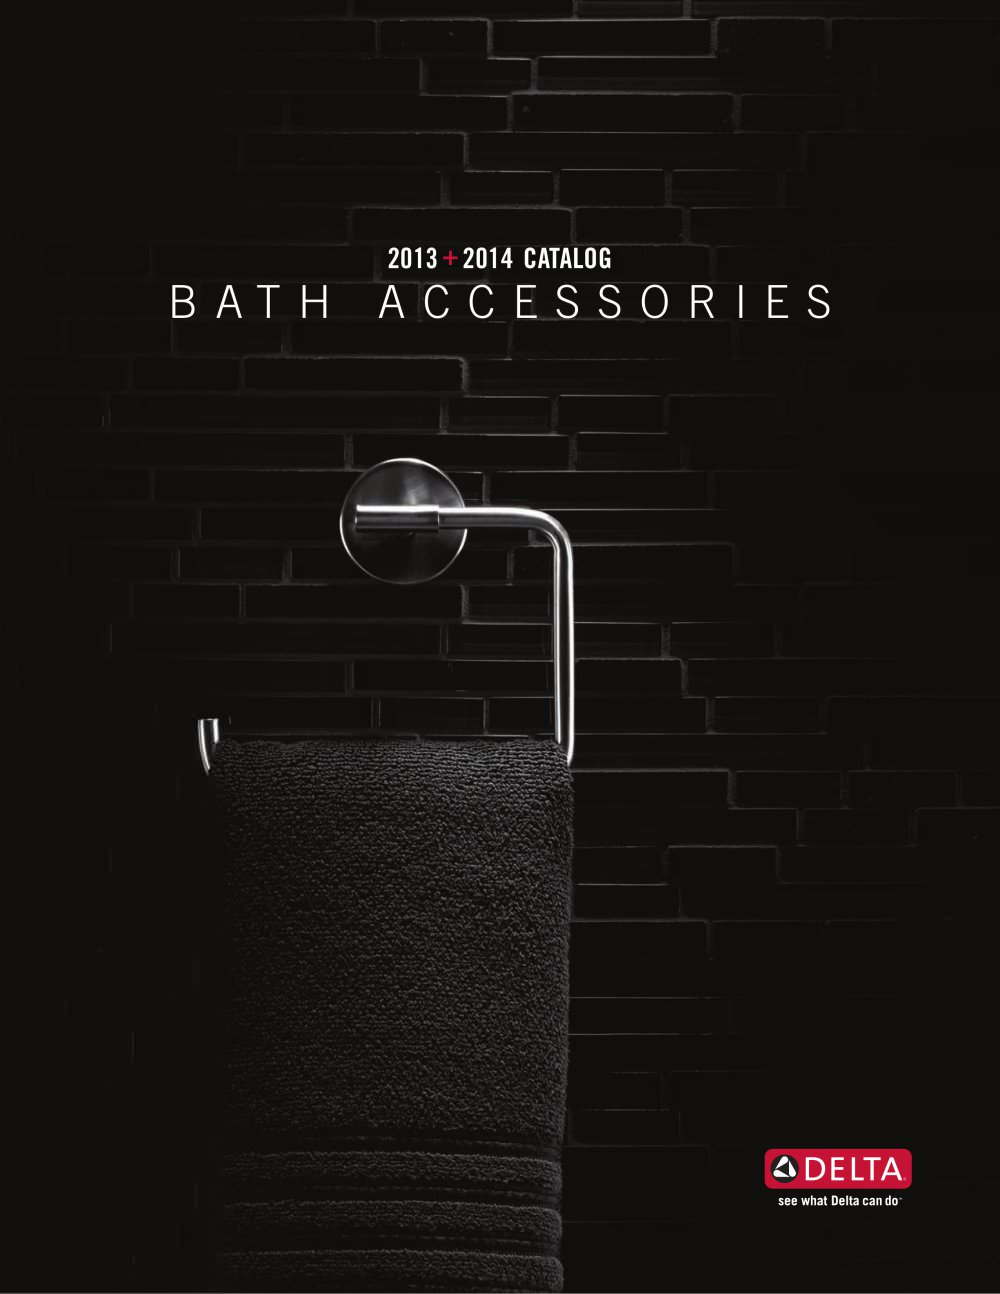 Bathroom Accessories 2014 2013-2014 bath accessories catalog (dl-1811) - delta - pdf